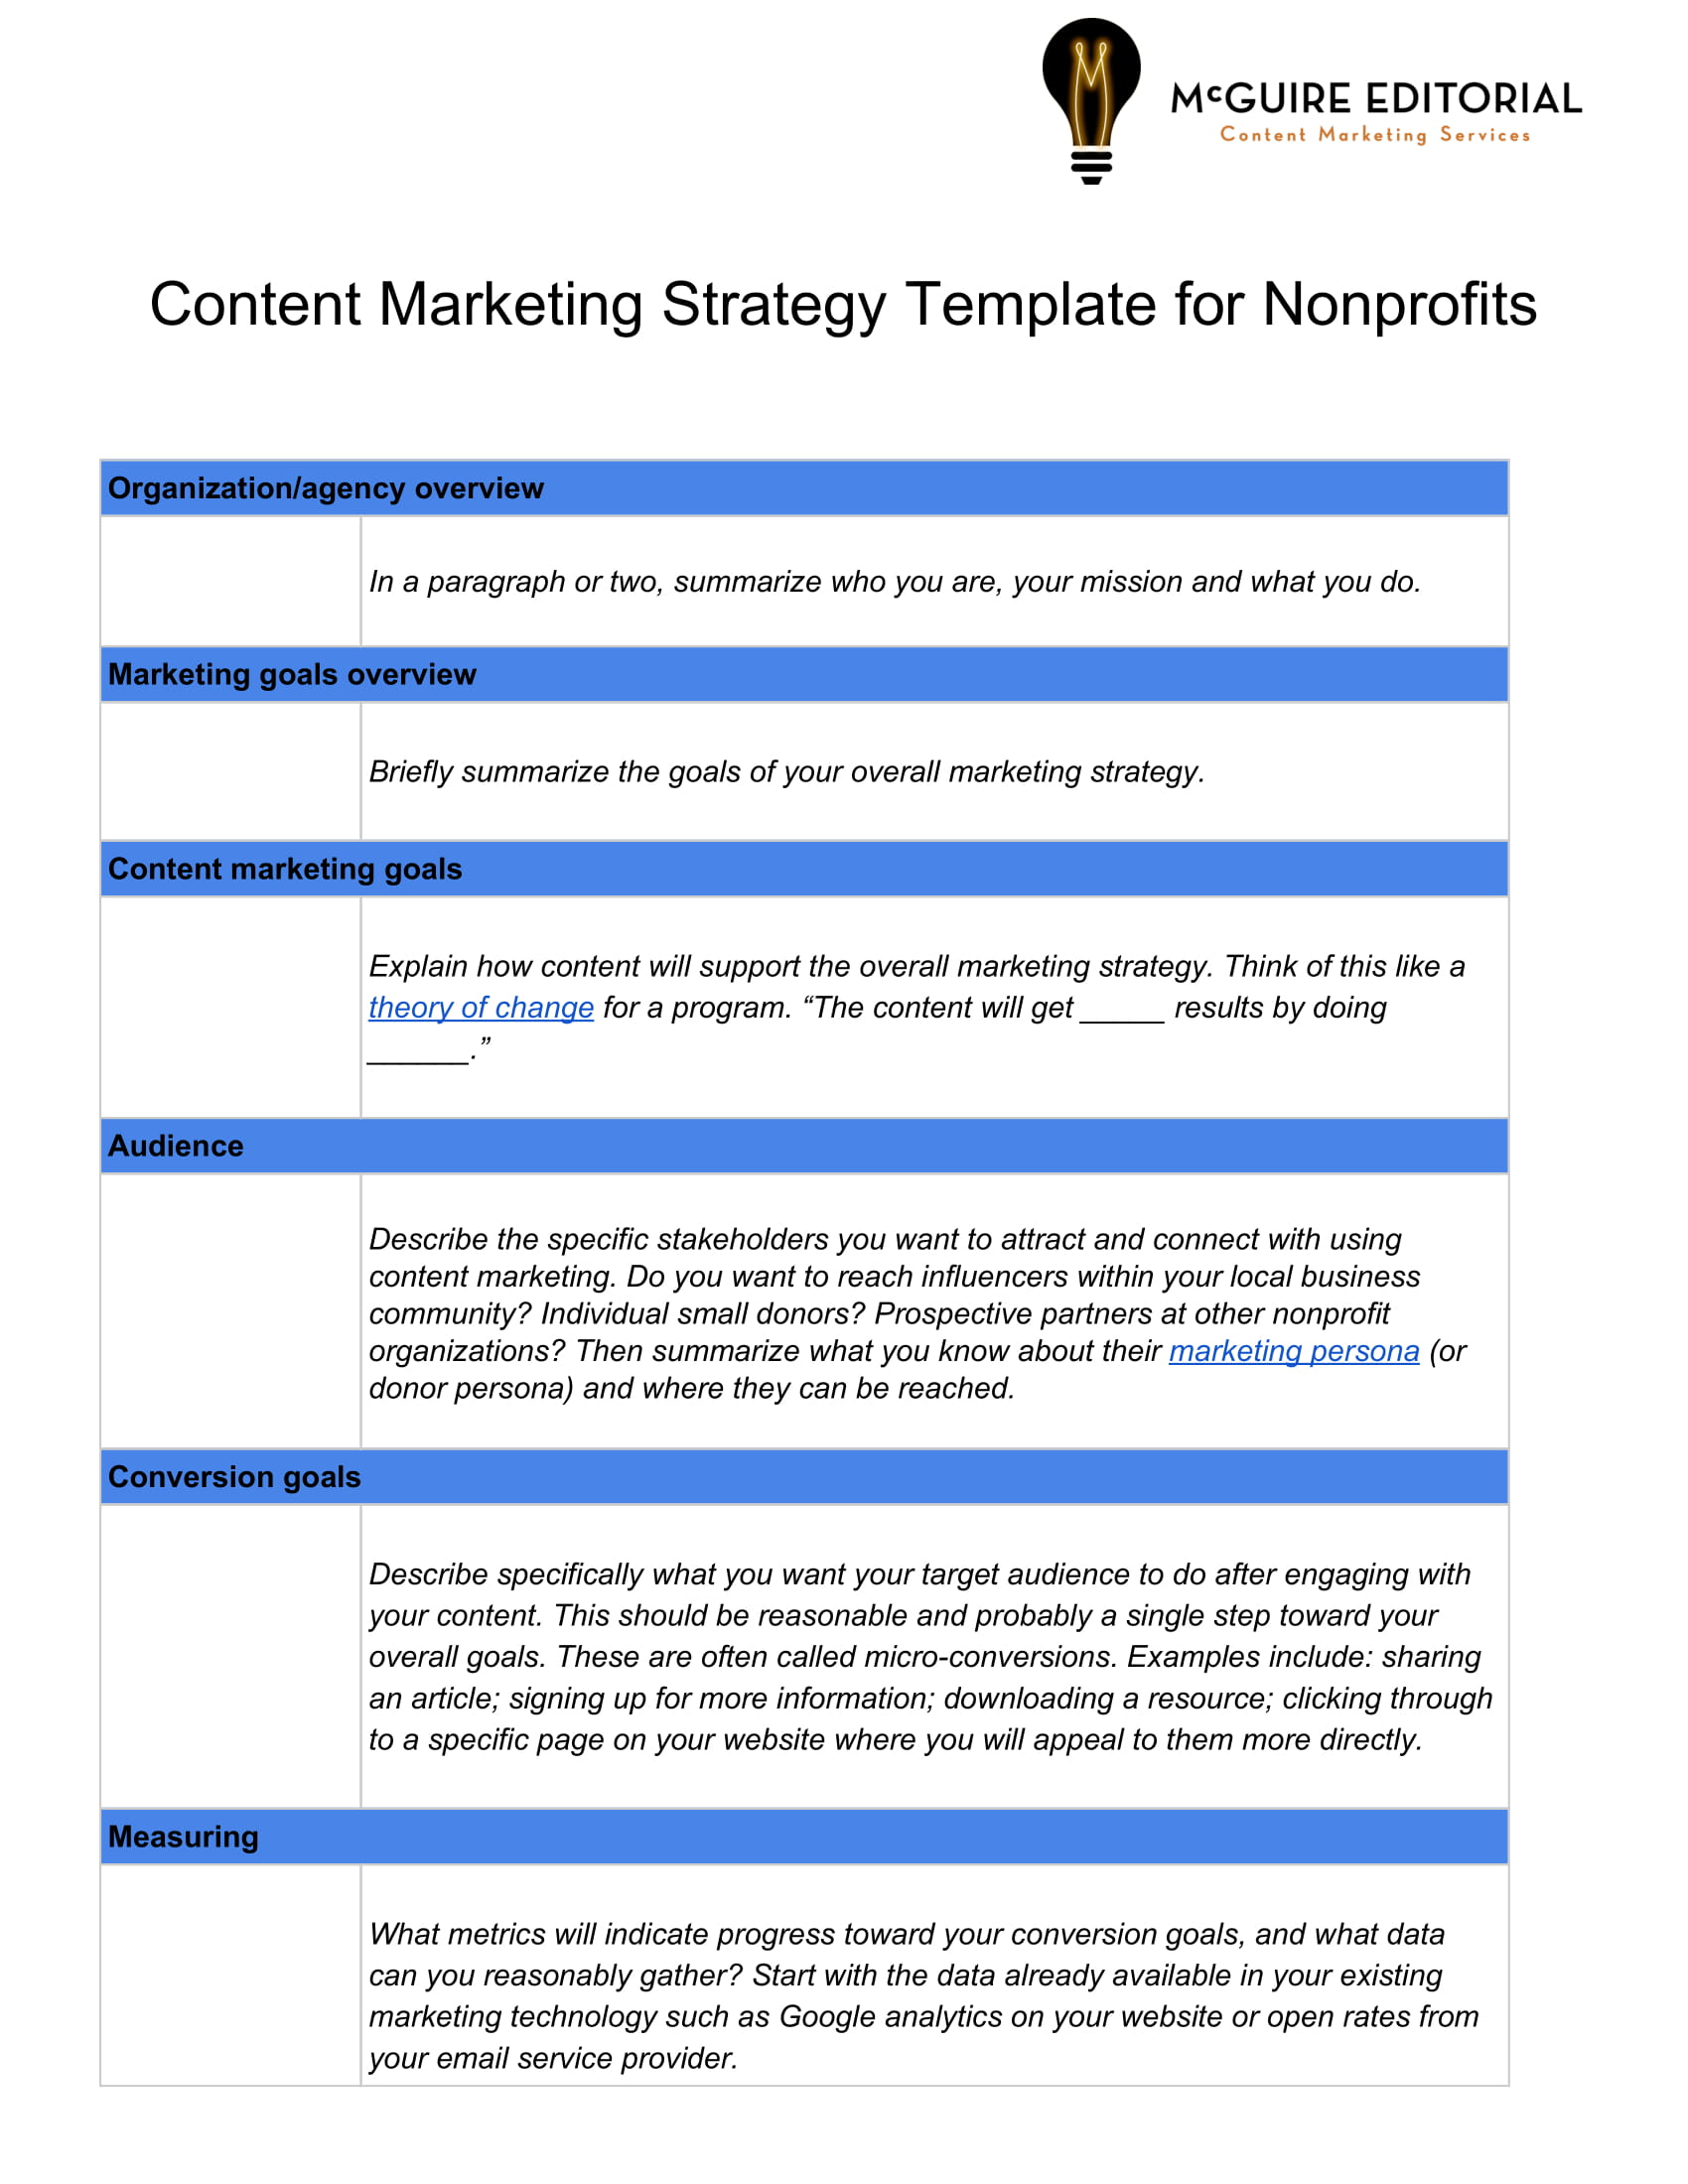 content marketing strategy template for nonprofits example